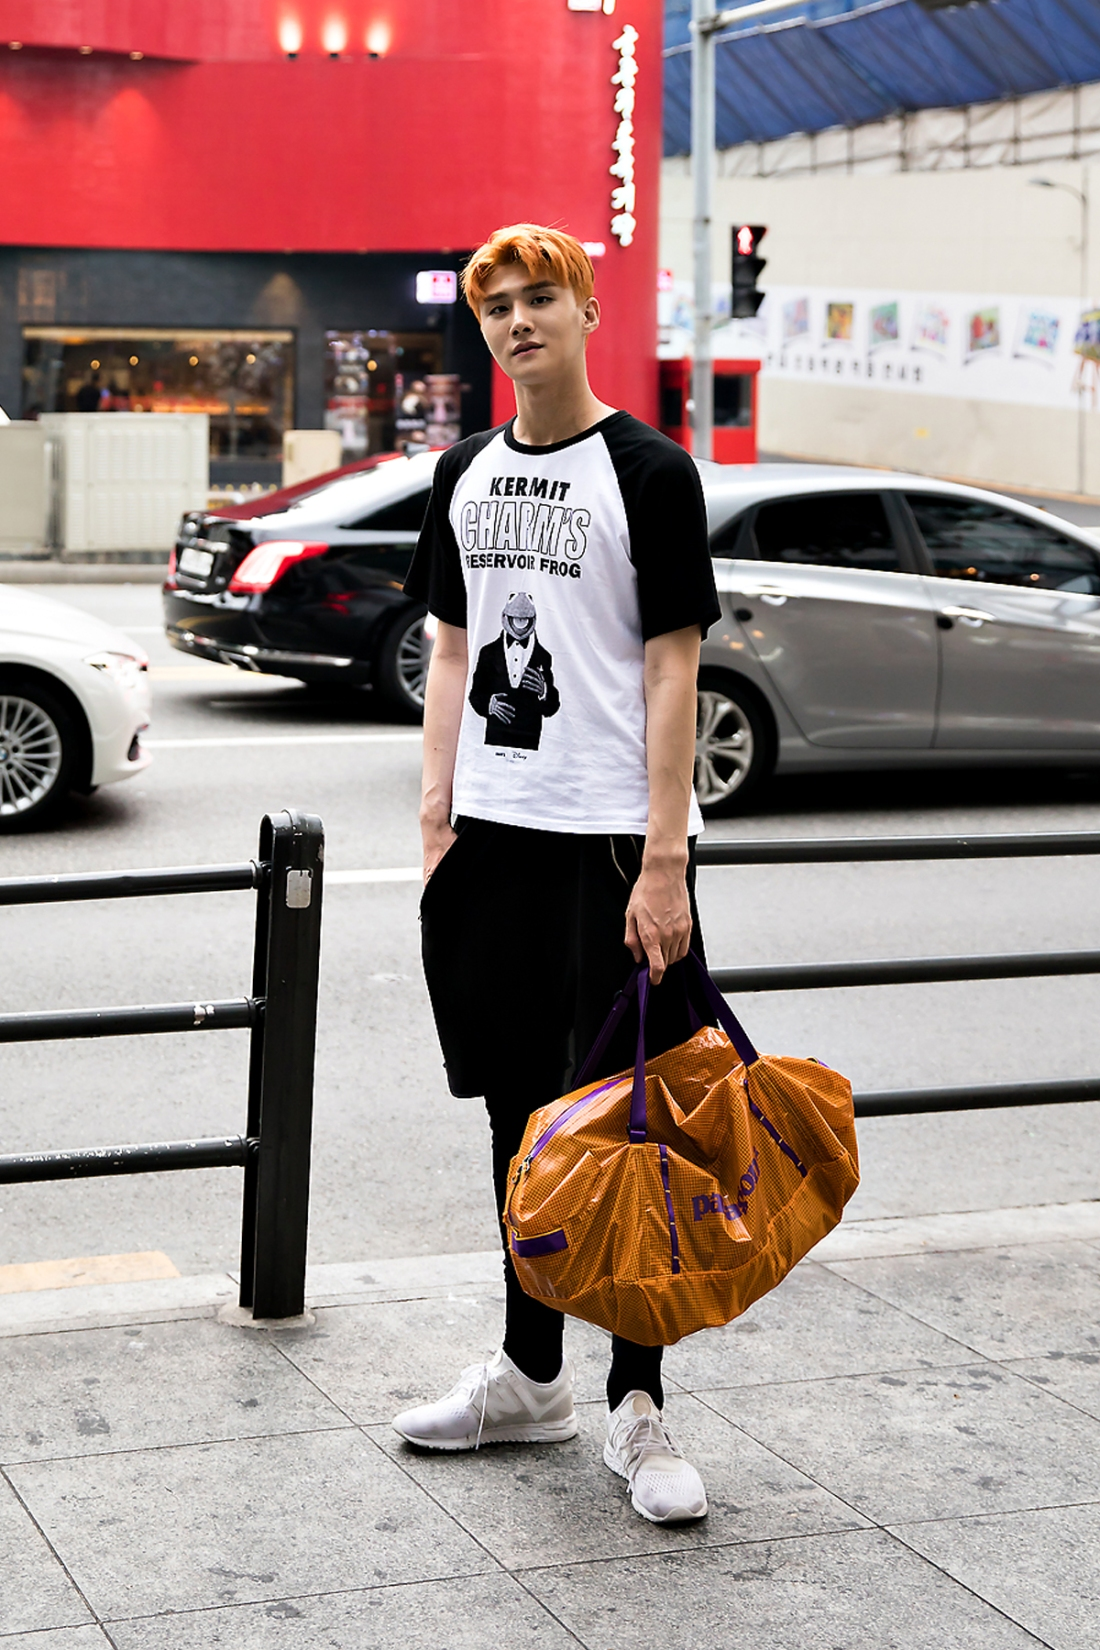 Shin Jaehyuk, Street Fashion 2017 in Seoul.jpg